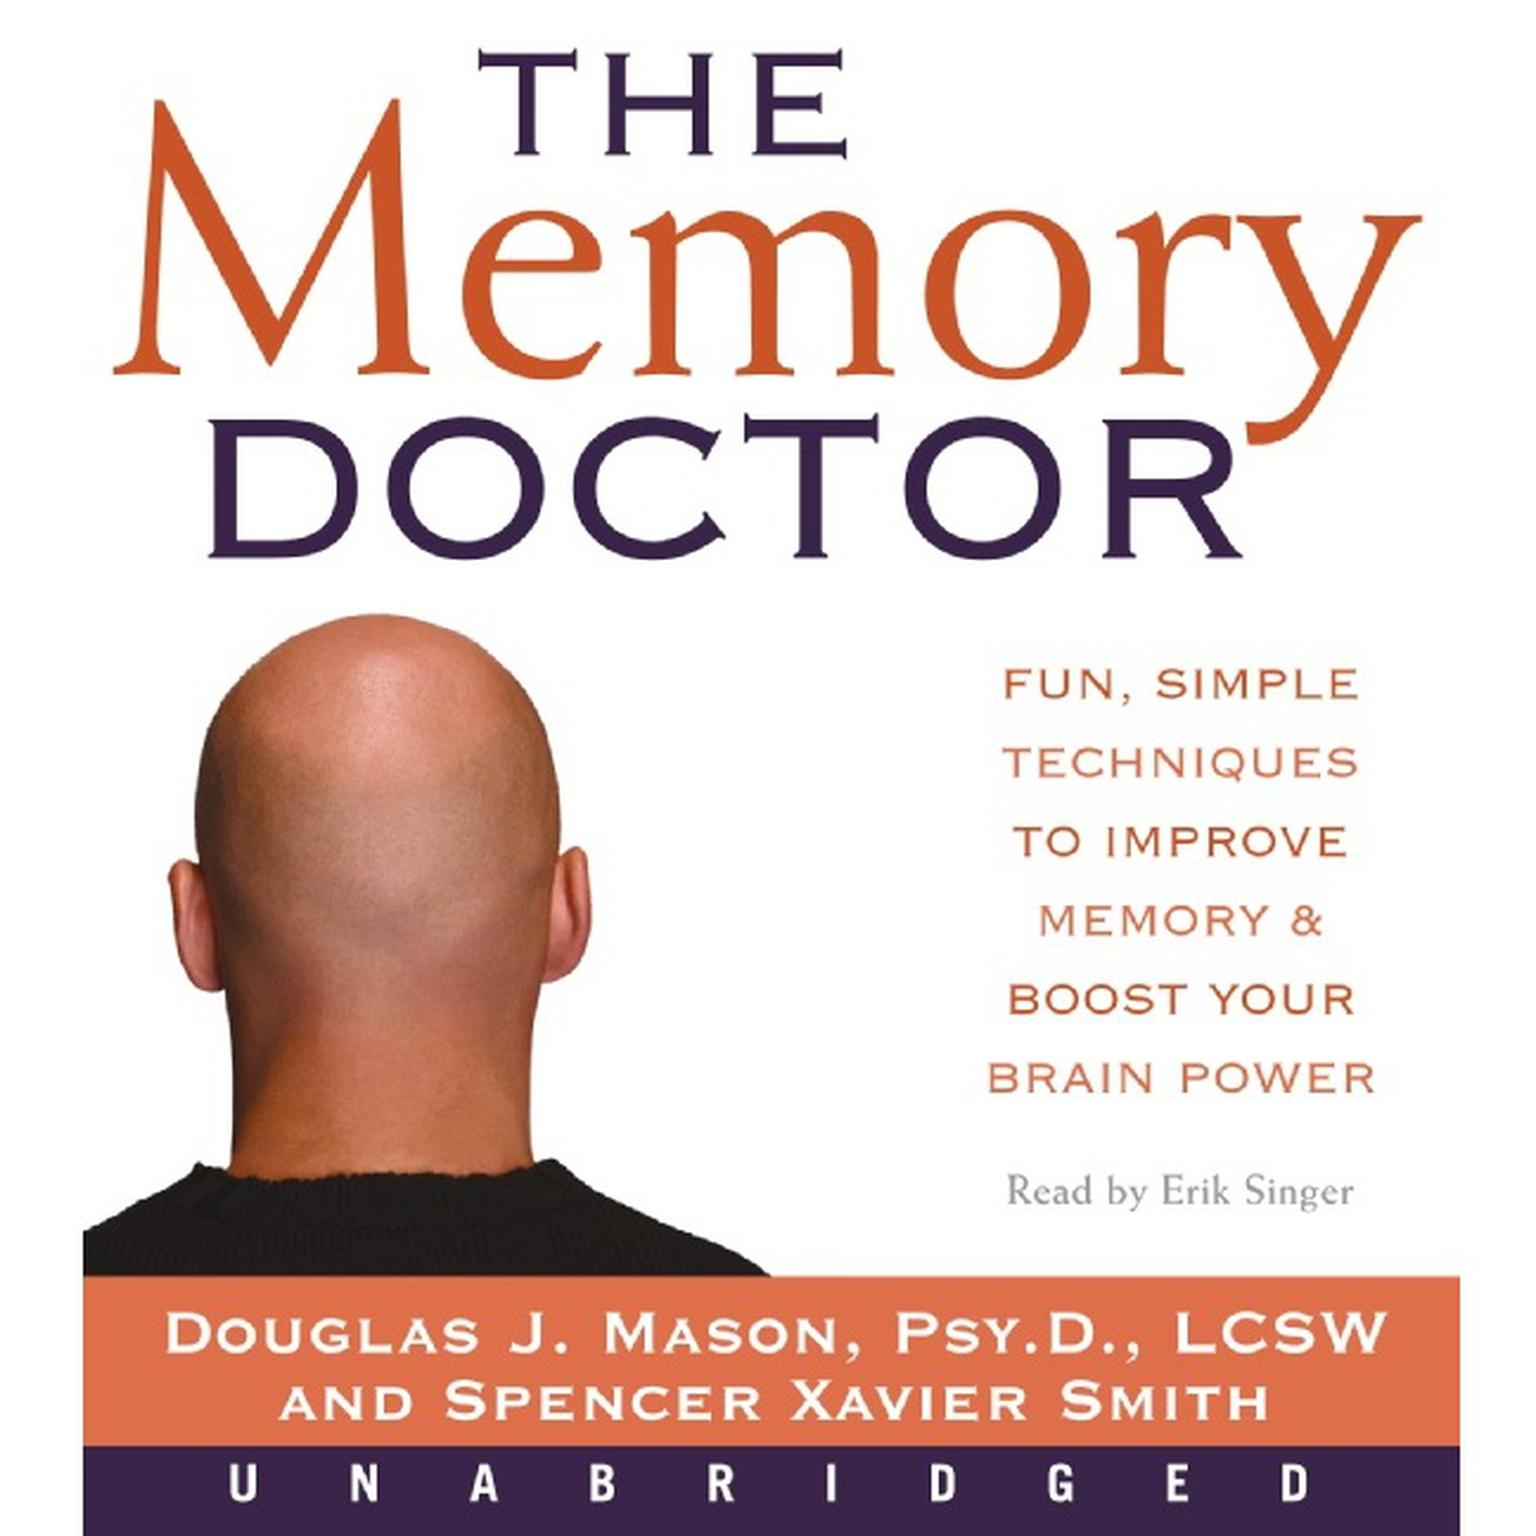 Printable The Memory Doctor Low Price: Fun, Simple Techniques to Improve Memory and Boost Your Brain Power Audiobook Cover Art